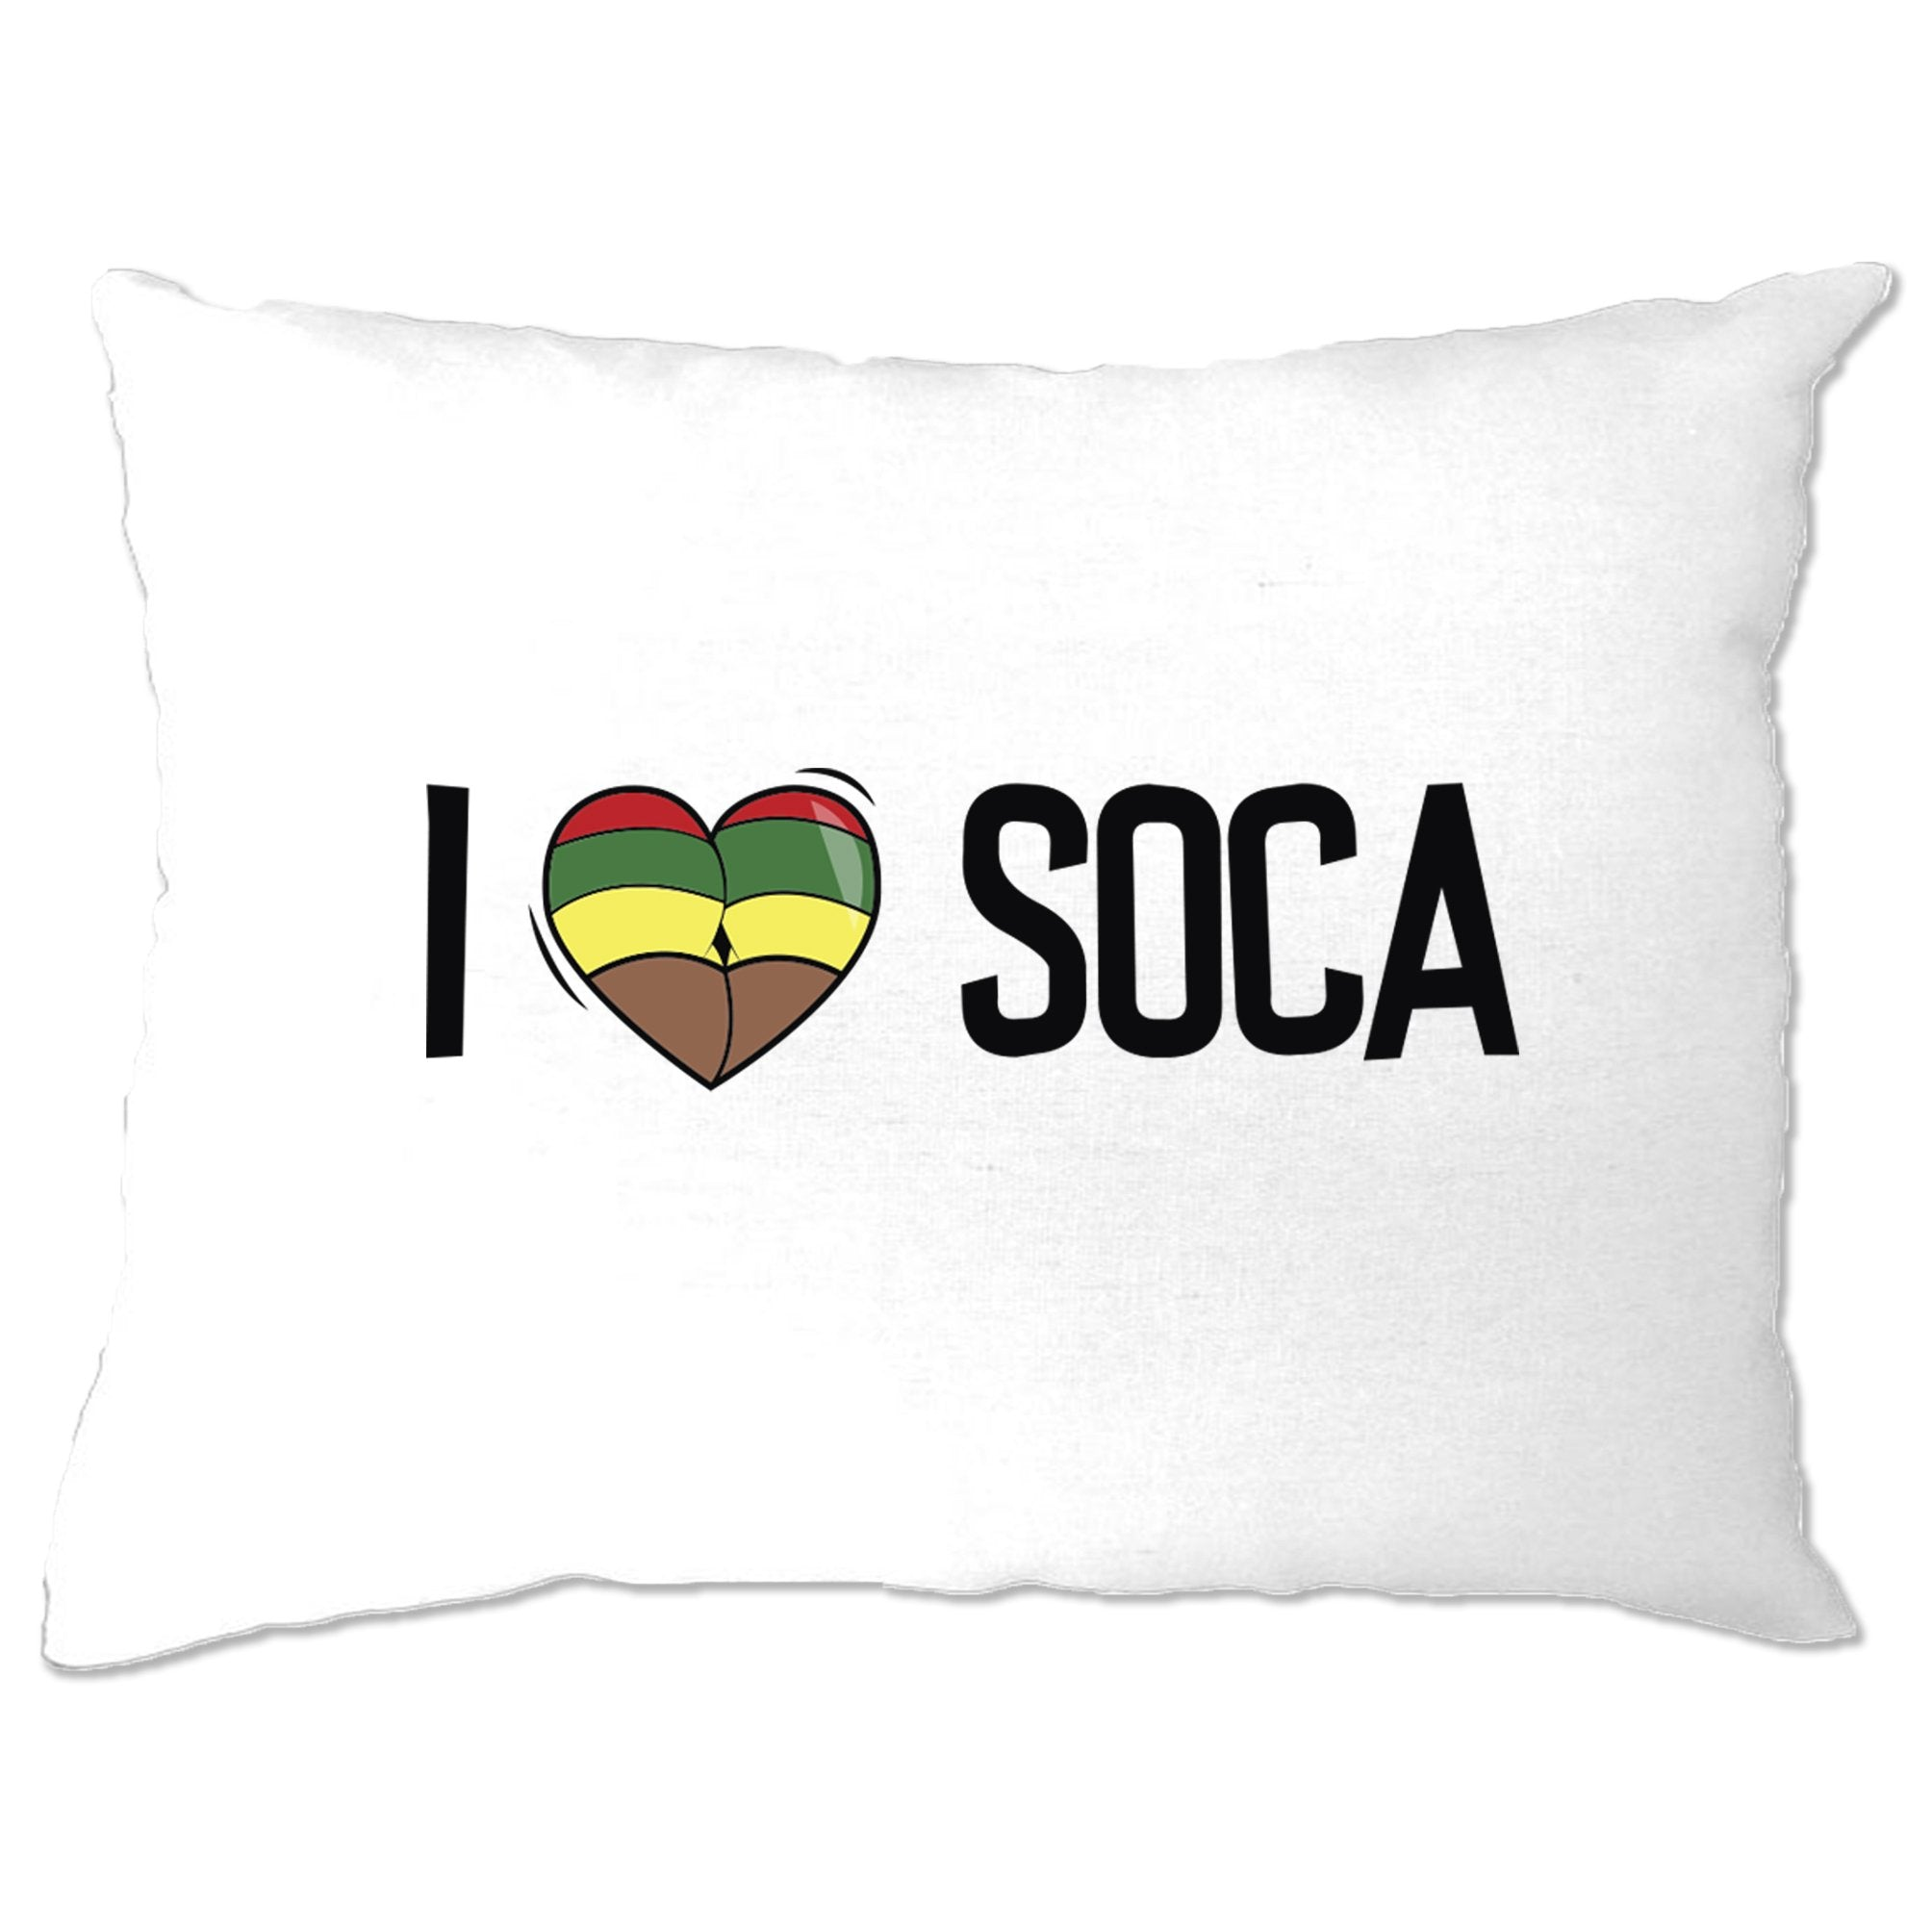 Music Pillow Case I Love Soca Reggae Jamaica Dub Carnival